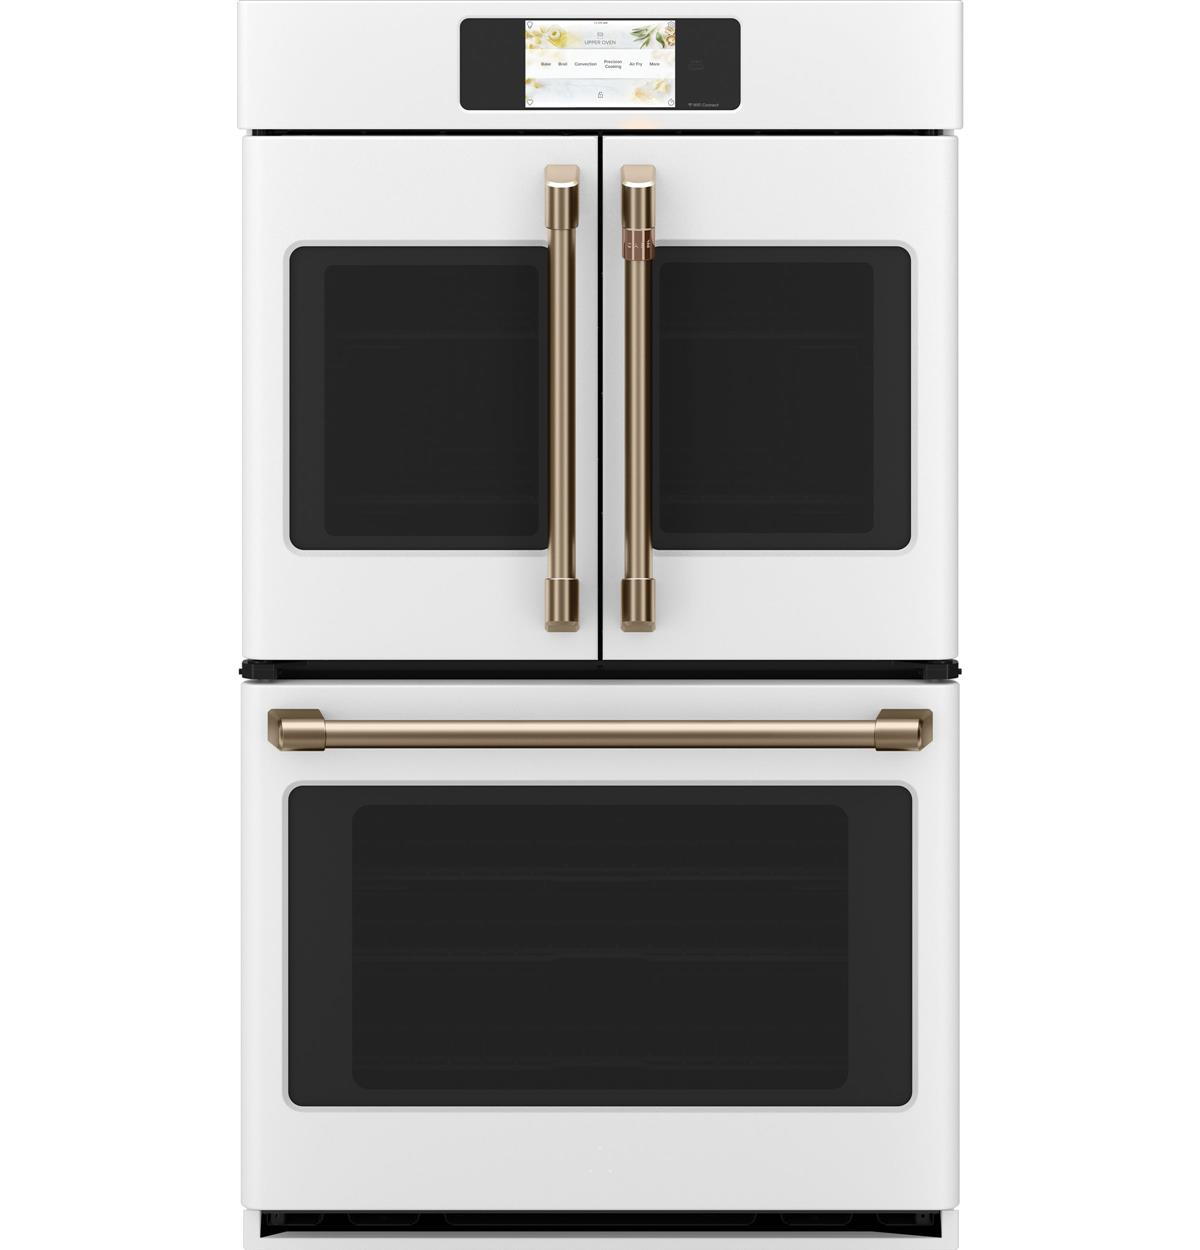 "Café™ Professional Series 30"" Smart Built-In Convection French-Door Double Wall Oven"